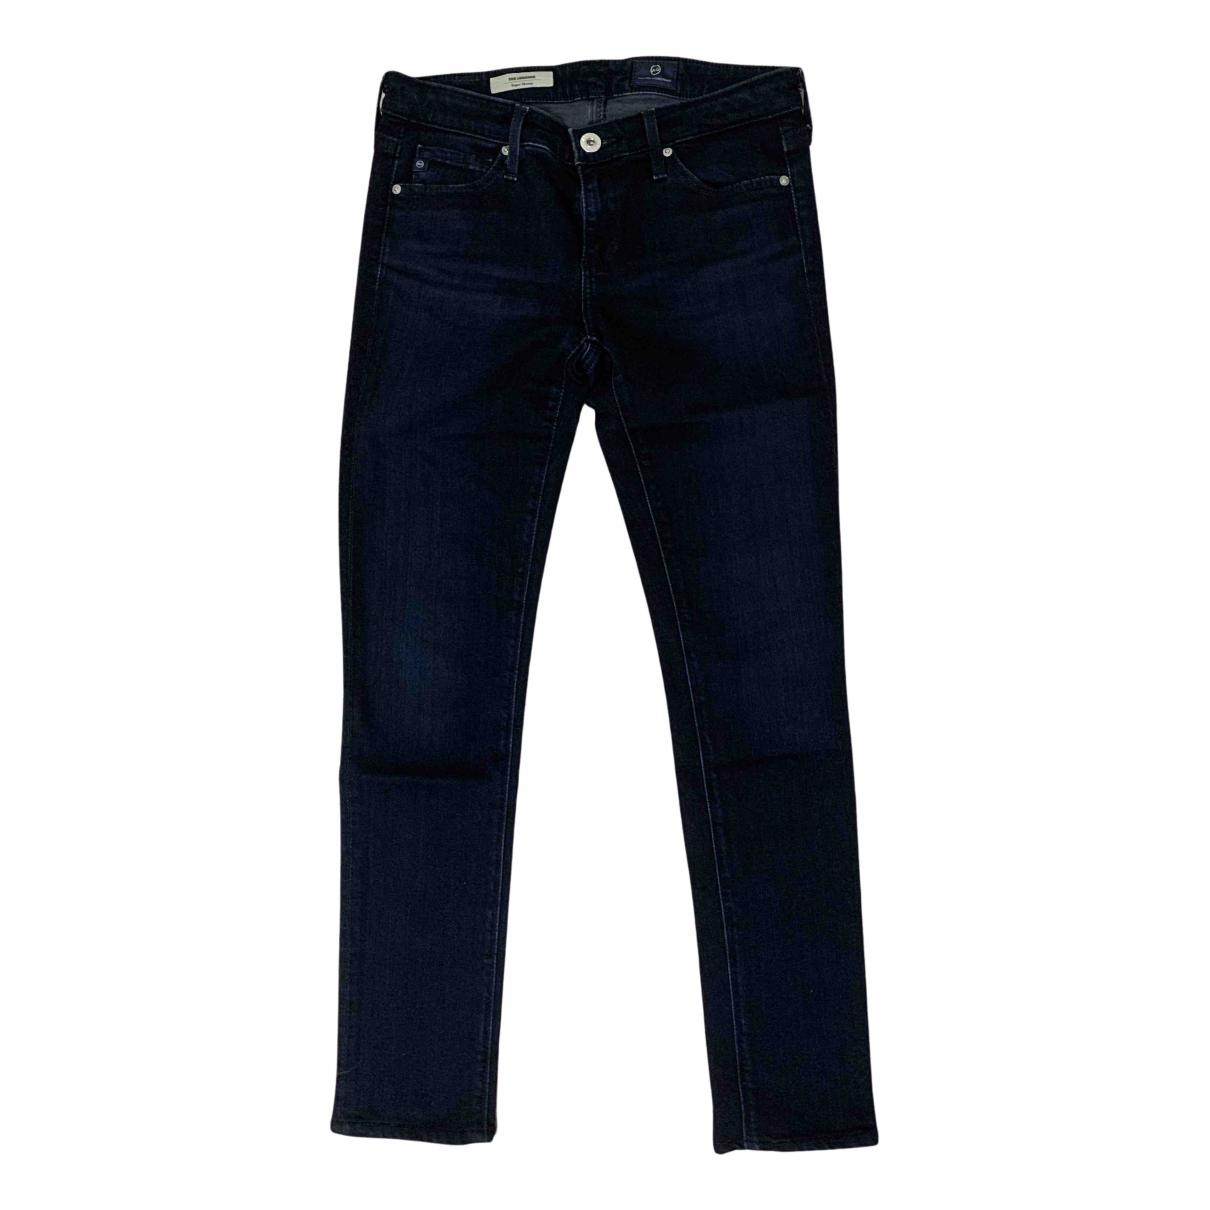 Ag Adriano Goldschmied N Blue Cotton - elasthane Jeans for Women 25 US